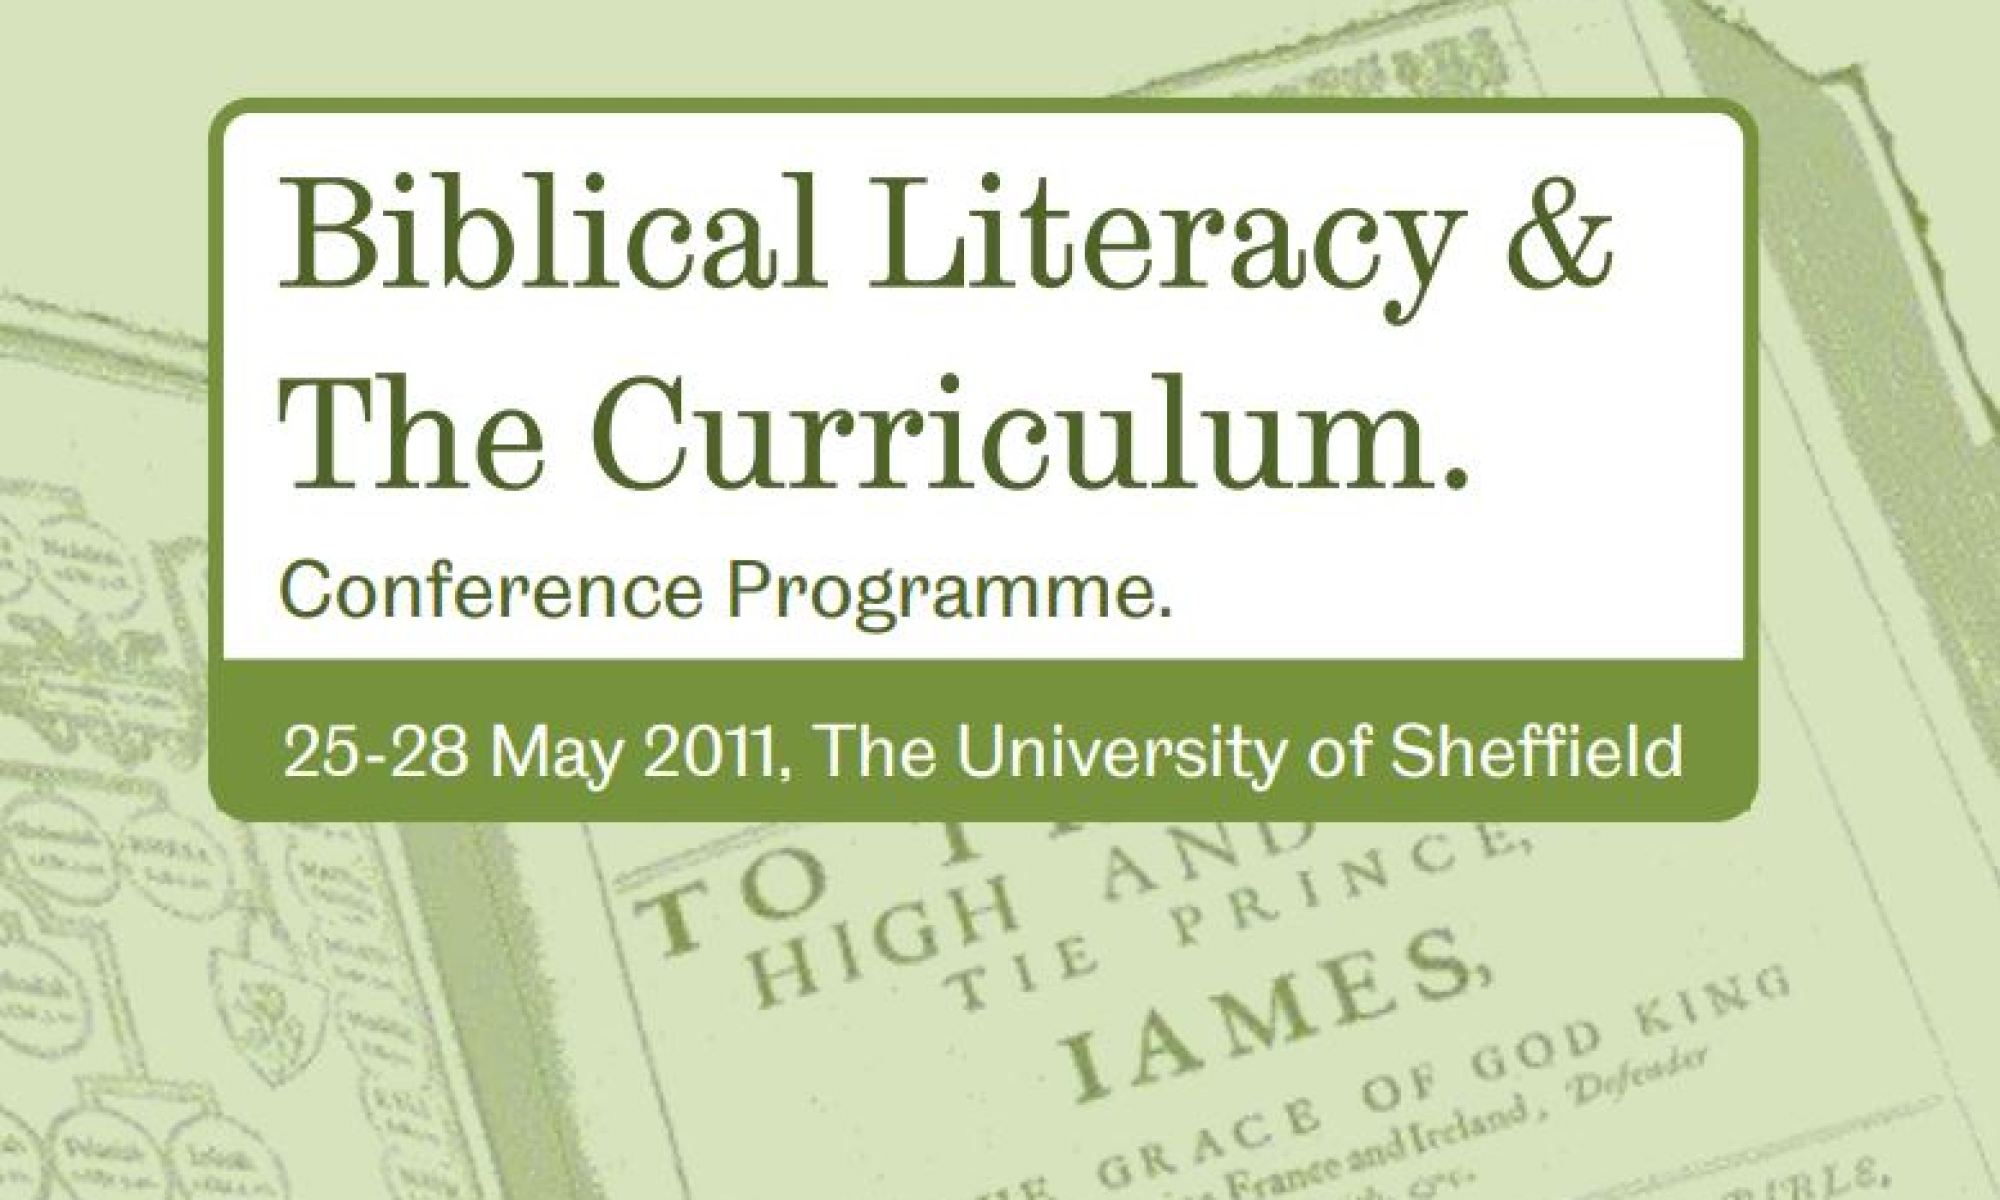 Header from the Biblical Literacy conference with titlepage of King James Bible in background